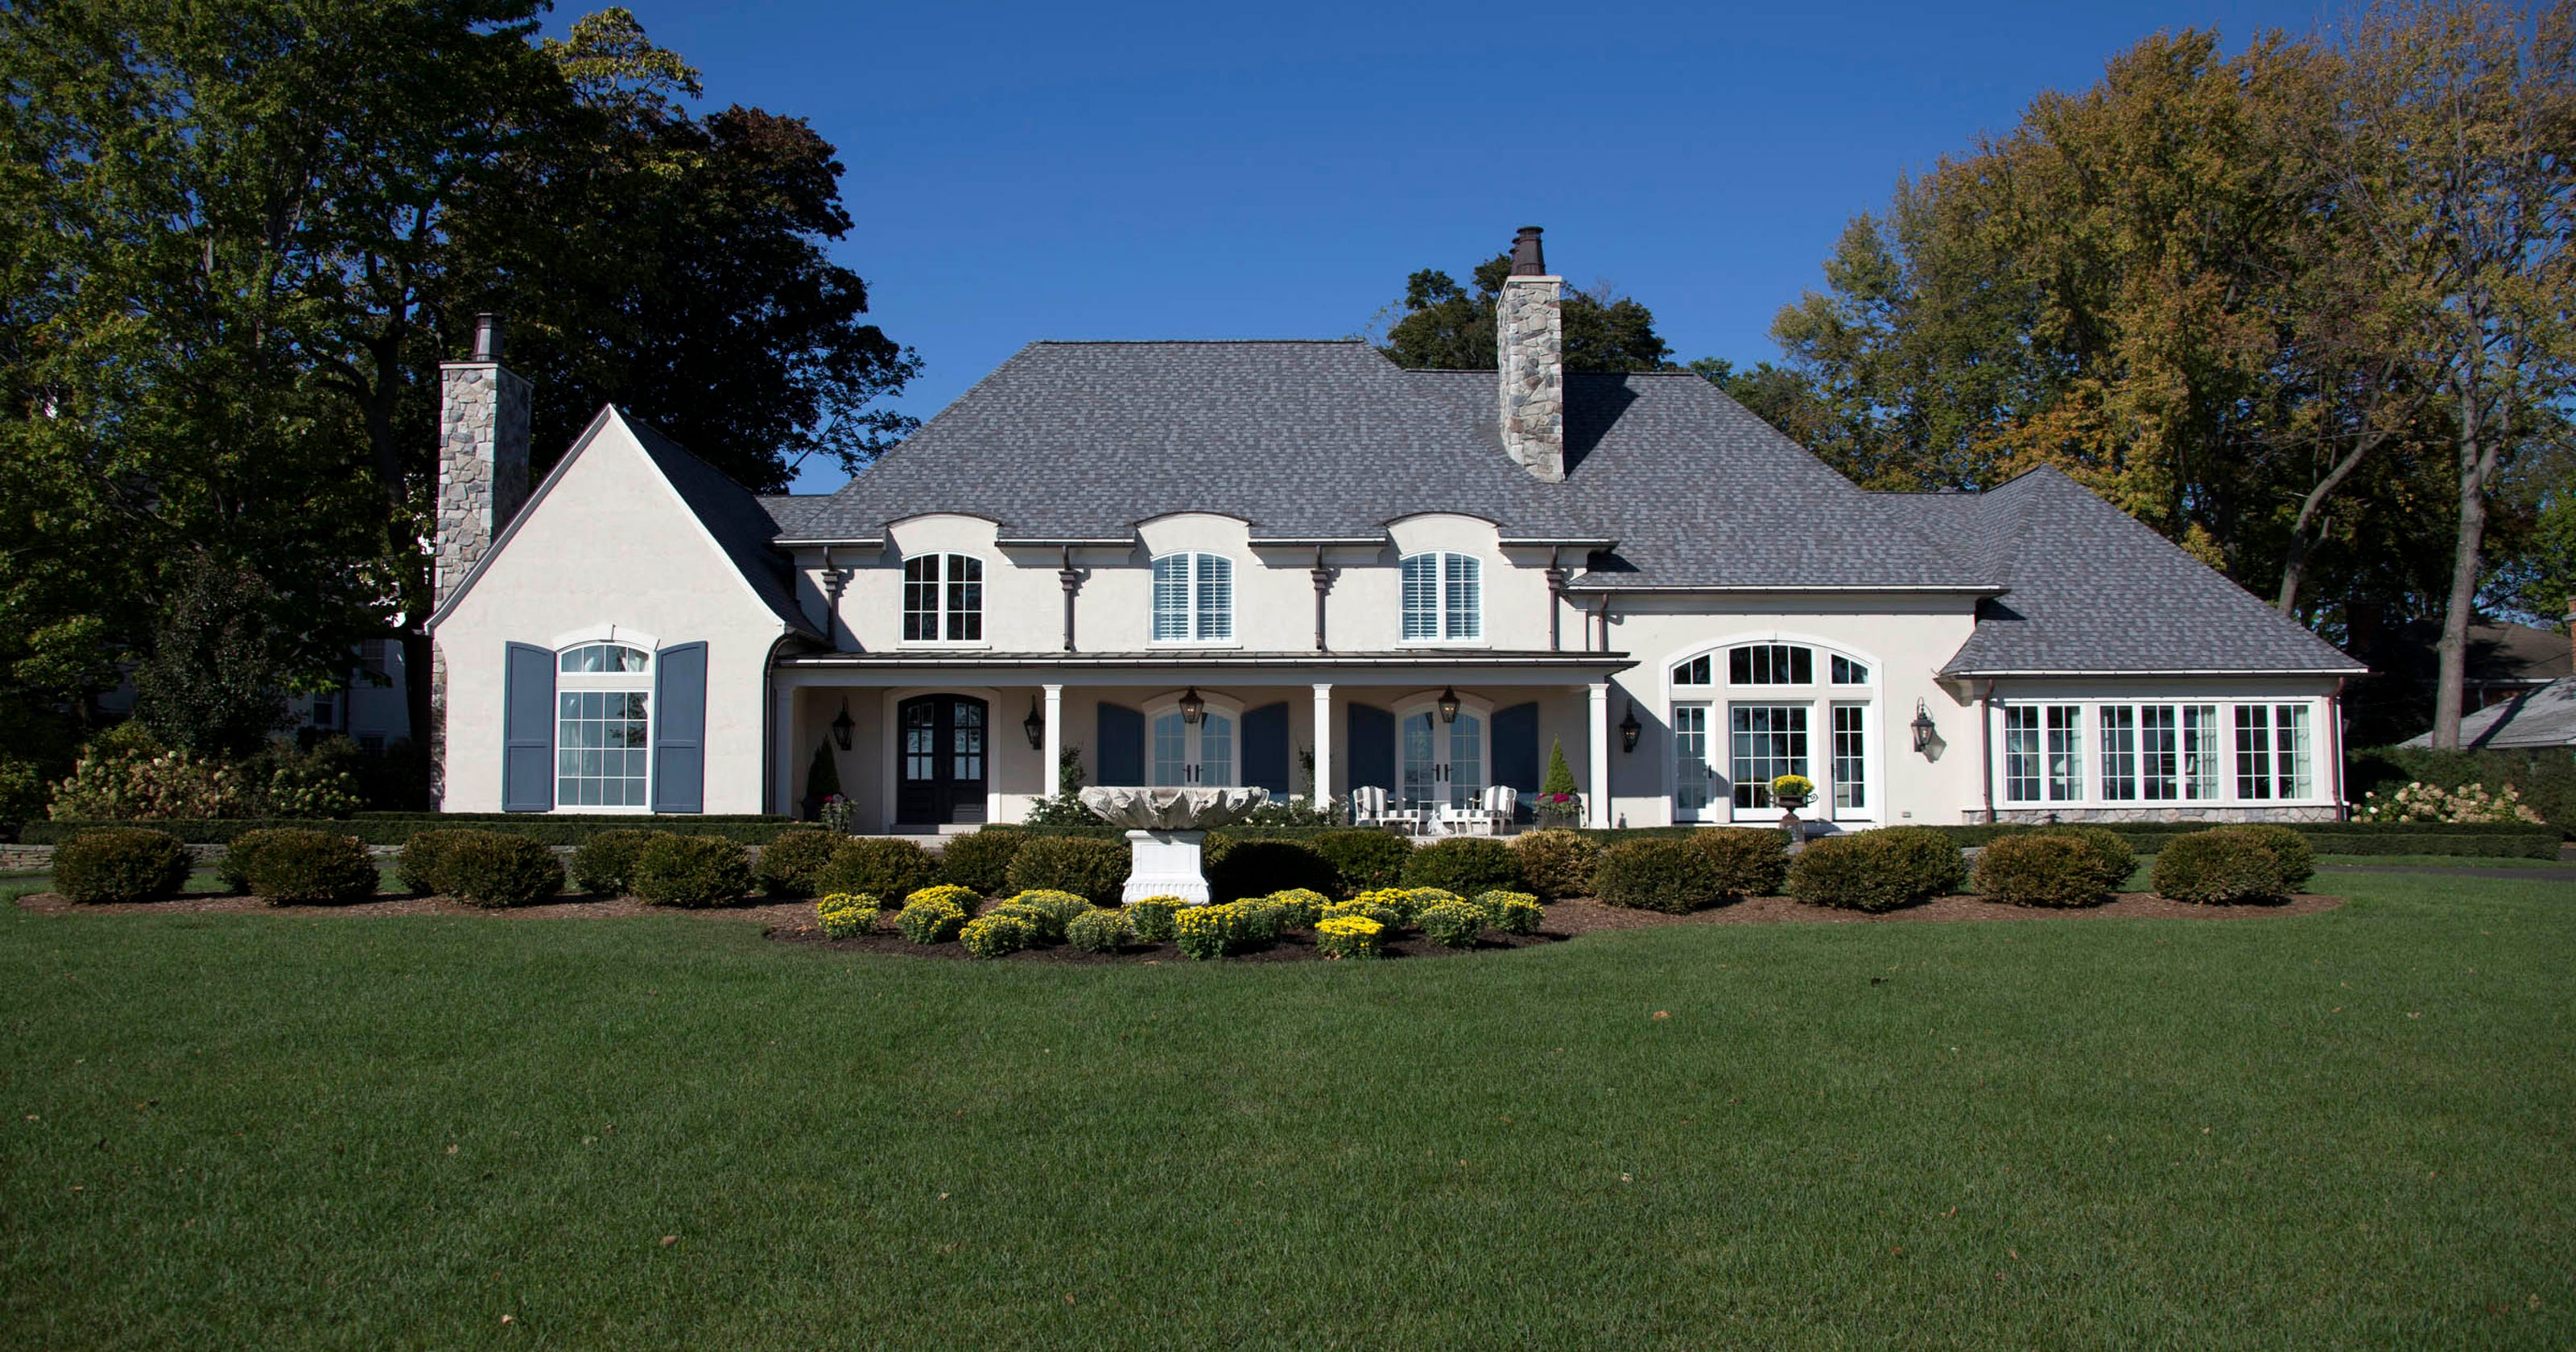 French style grosse pointe home comes with a view of lake st clair